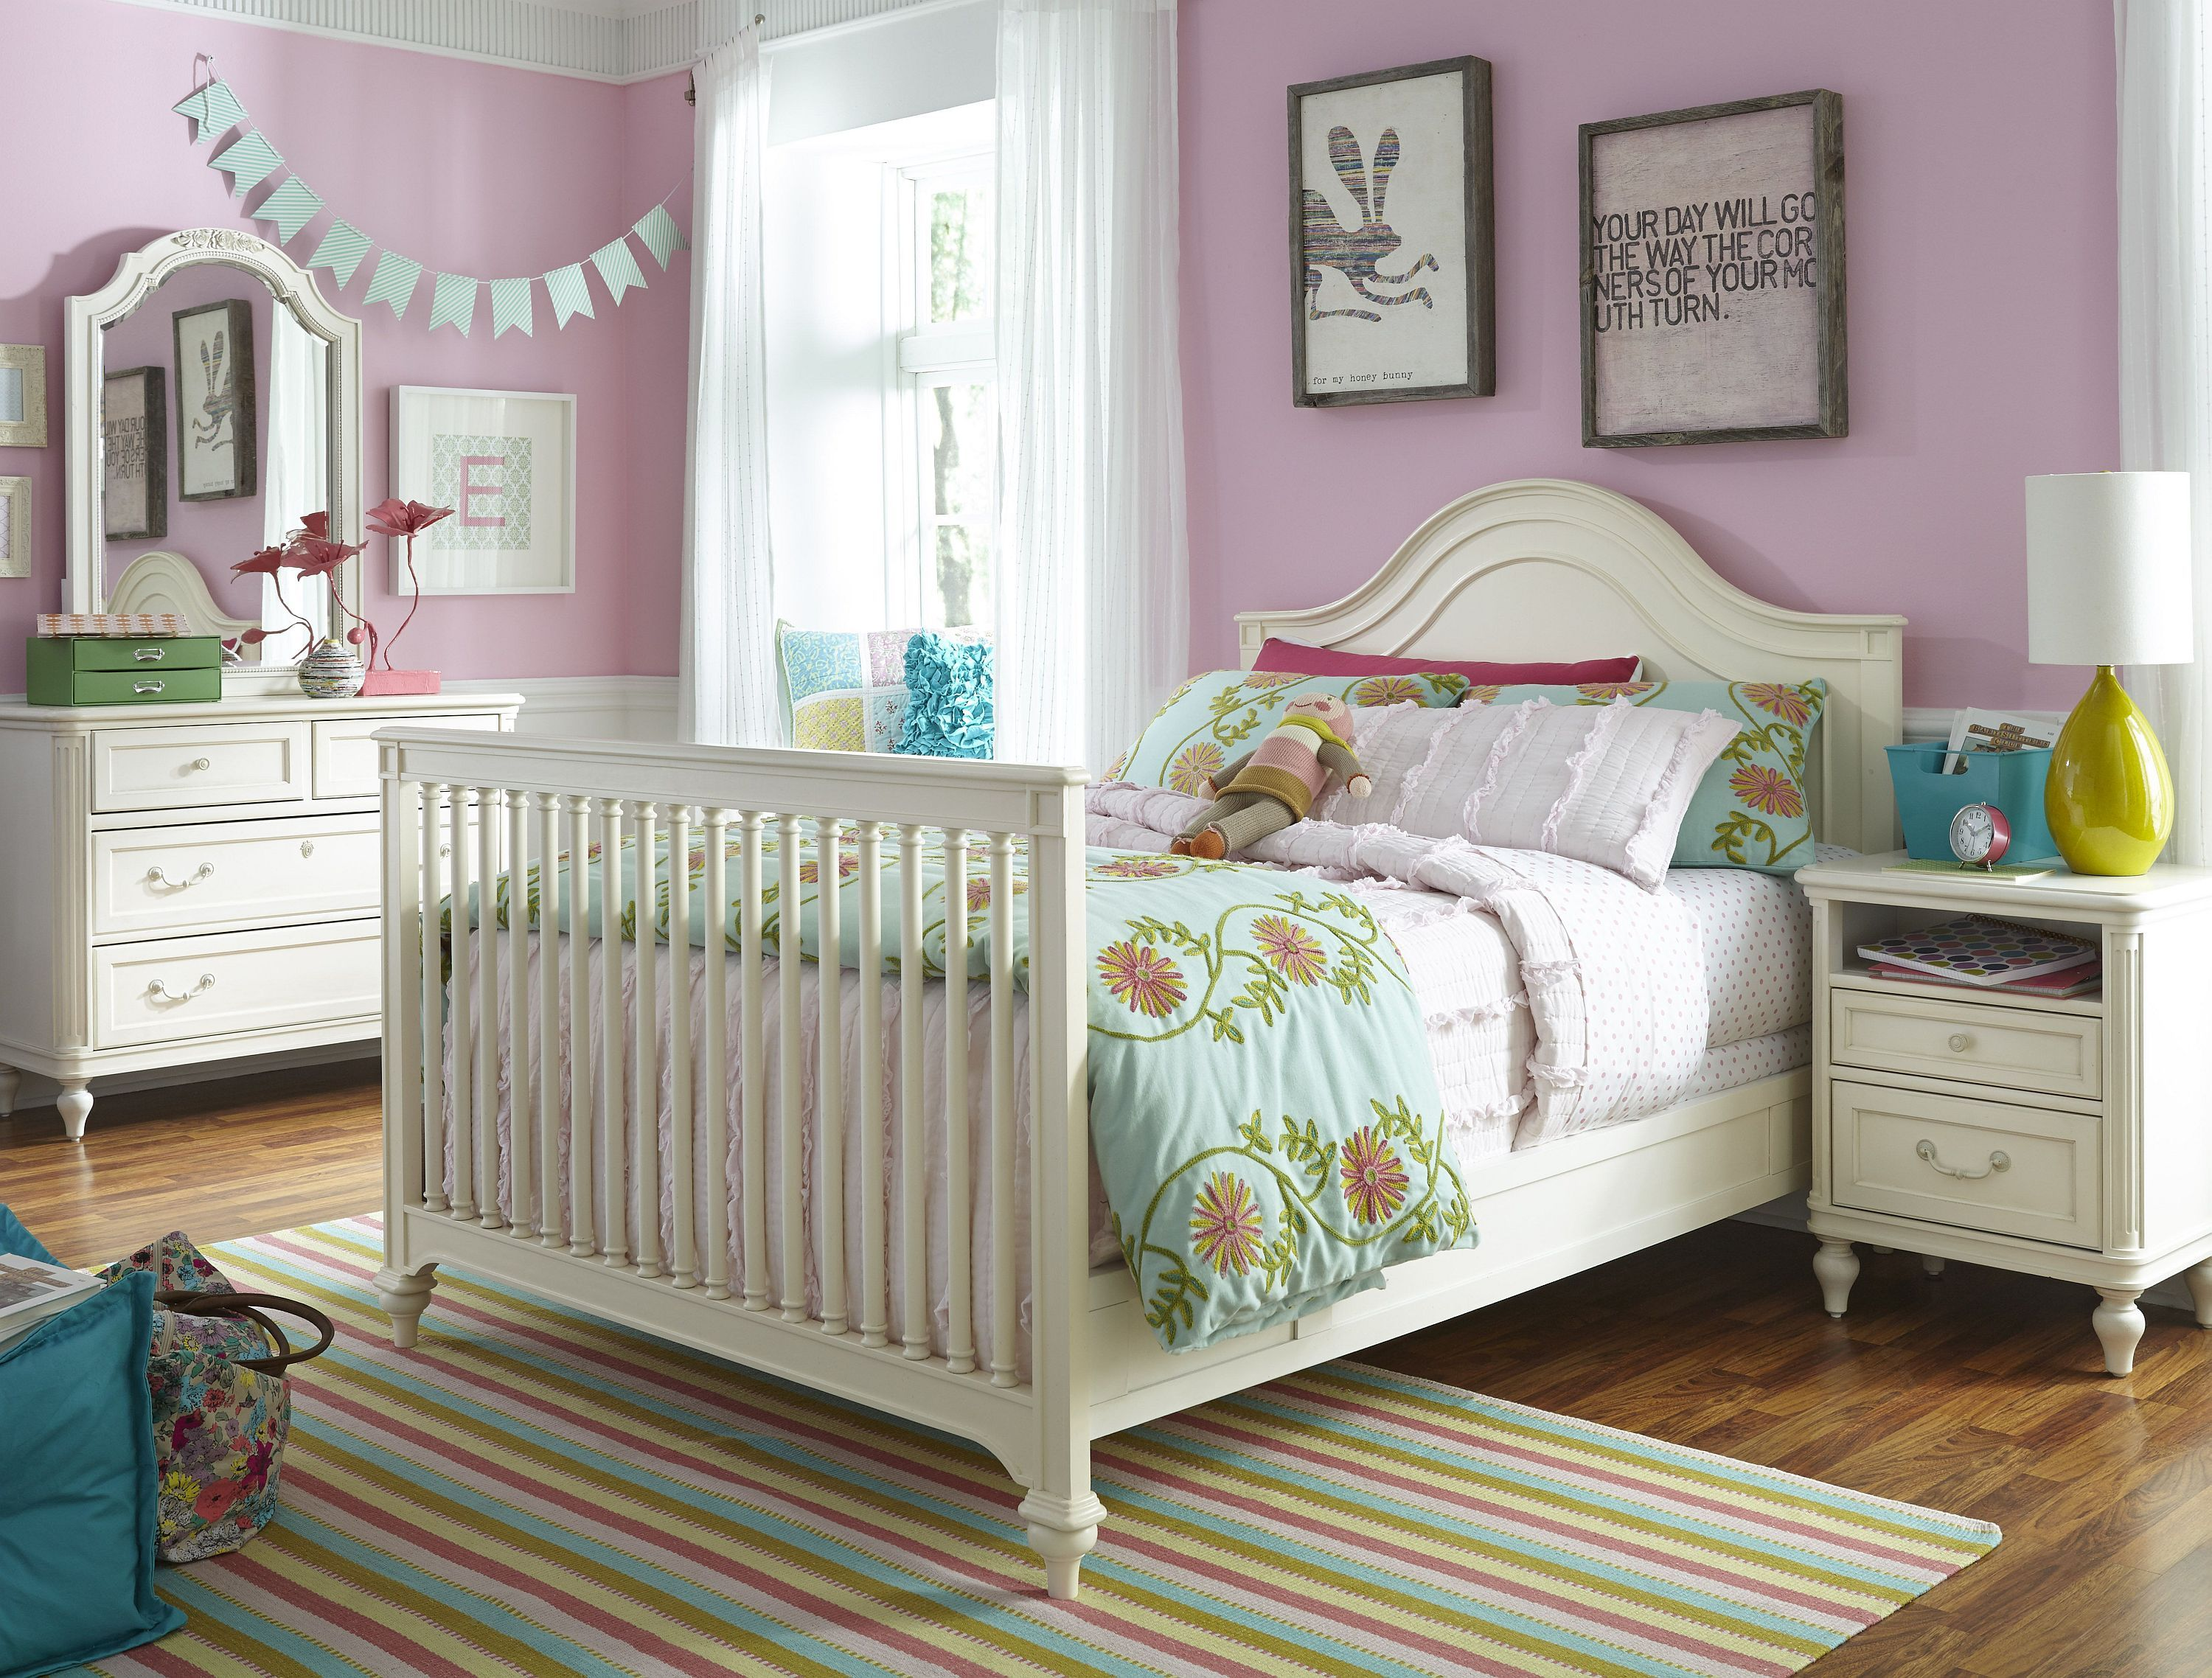 confort marquette baby products cribs turns sourceimage bed convertible dorel eng white into living upholstered in kids image bebe crib